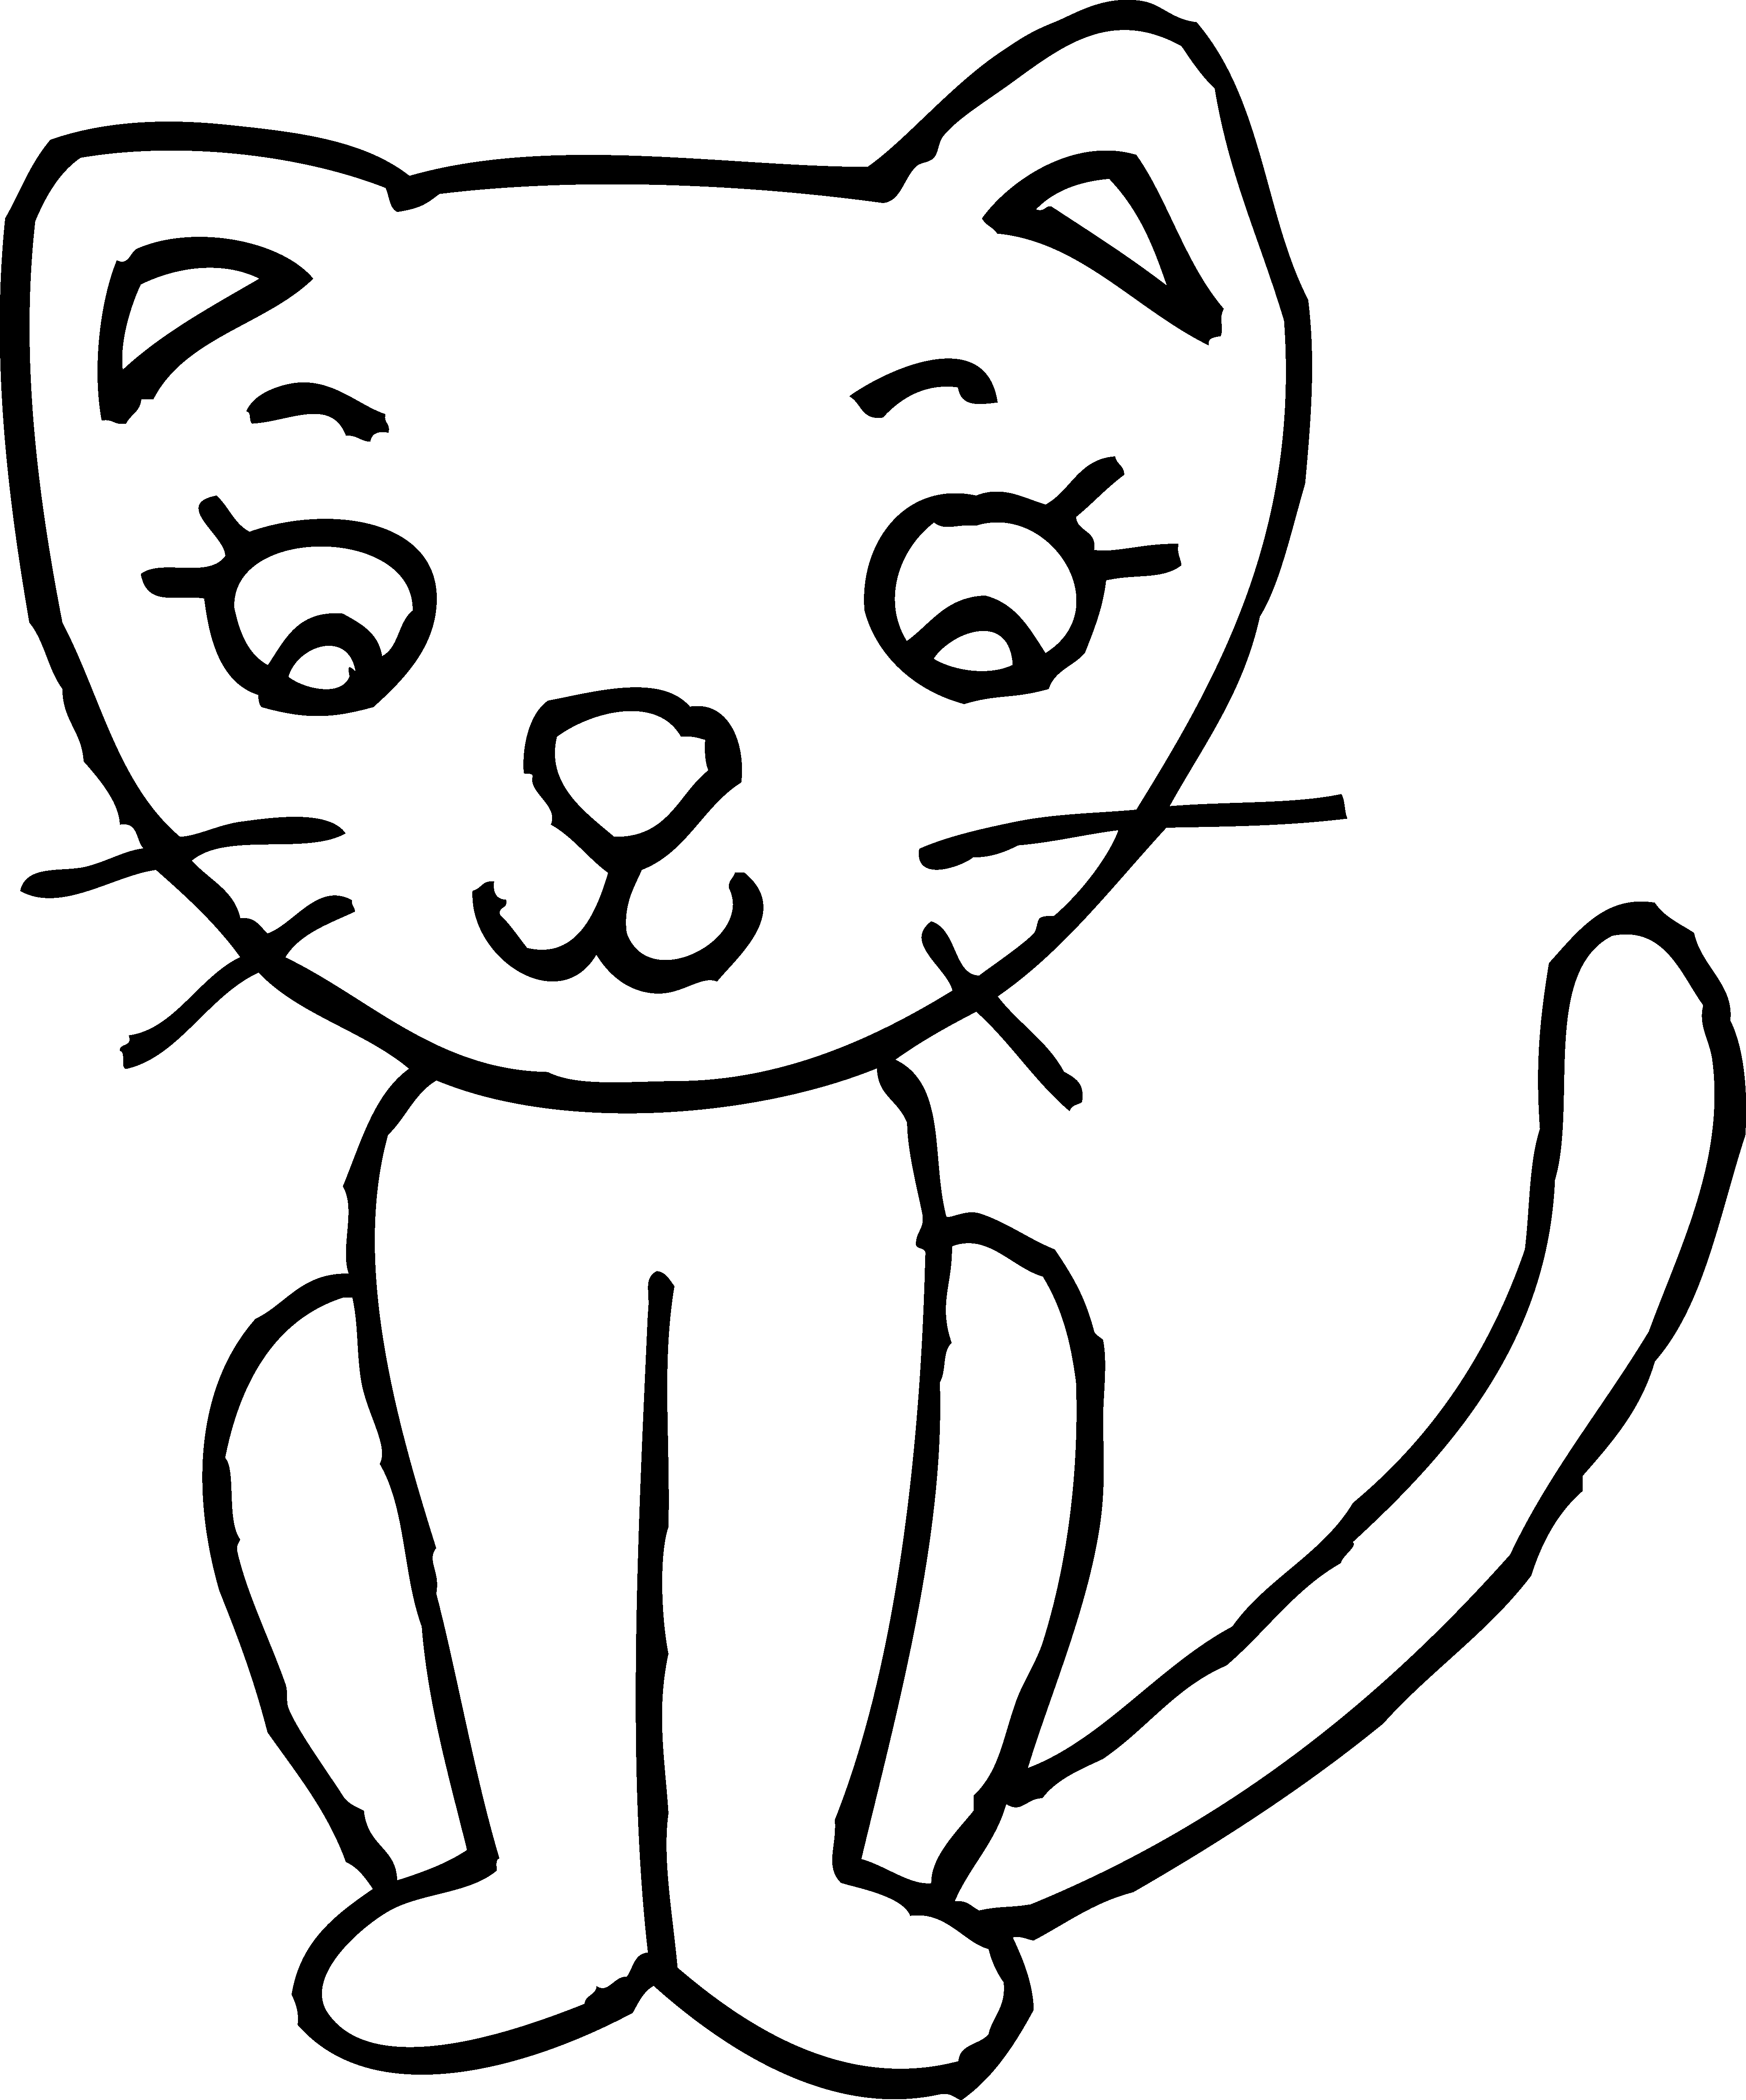 Cat Clip Art Black And White - Cliparts.co